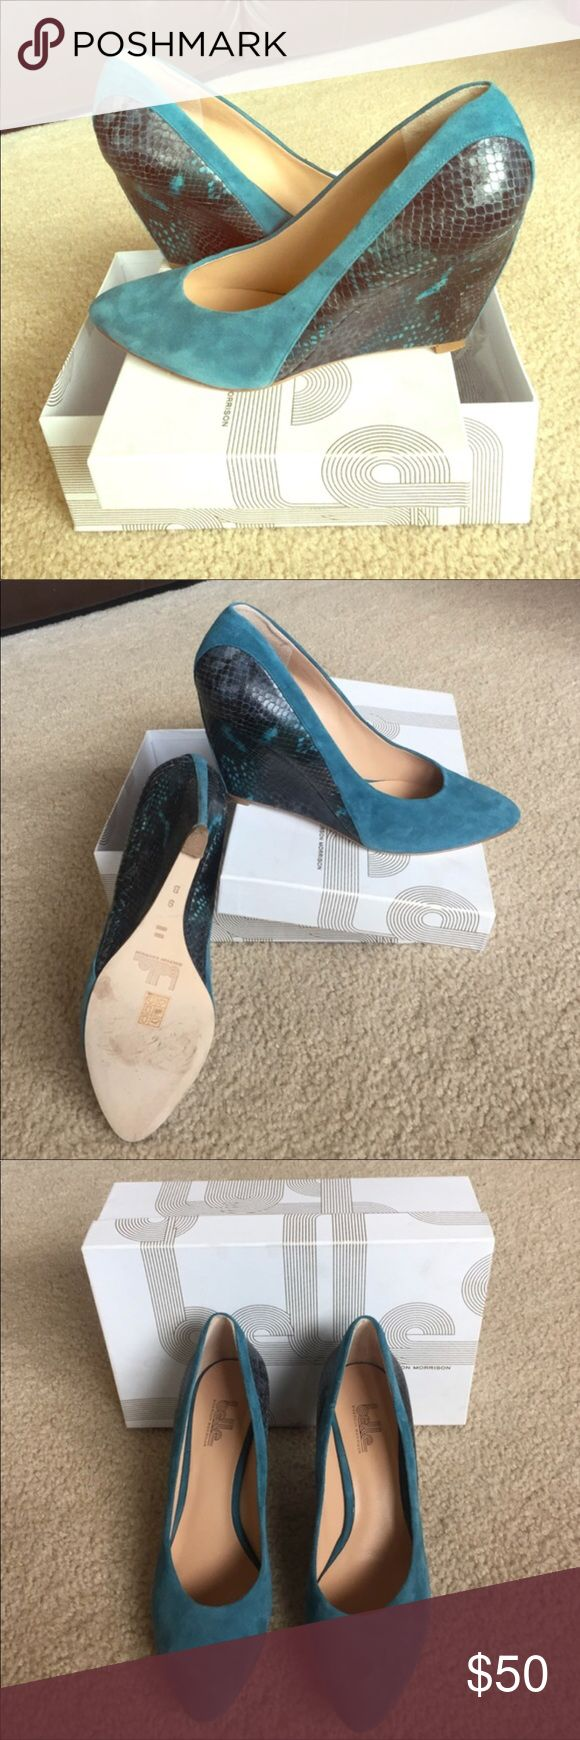 """Stylish Belle Sigerson Teal Wedges 8.5-9 3.5""""wedge heel with snakeskin print. They are very stylish and great quality.   Original price: $298.00  Does not come with box. I wear a 9-9.5 and they are a little snug on me. I feel that these will fit someone that's a 8.5-9. Belle by Sigerson Morrison Shoes Wedges"""